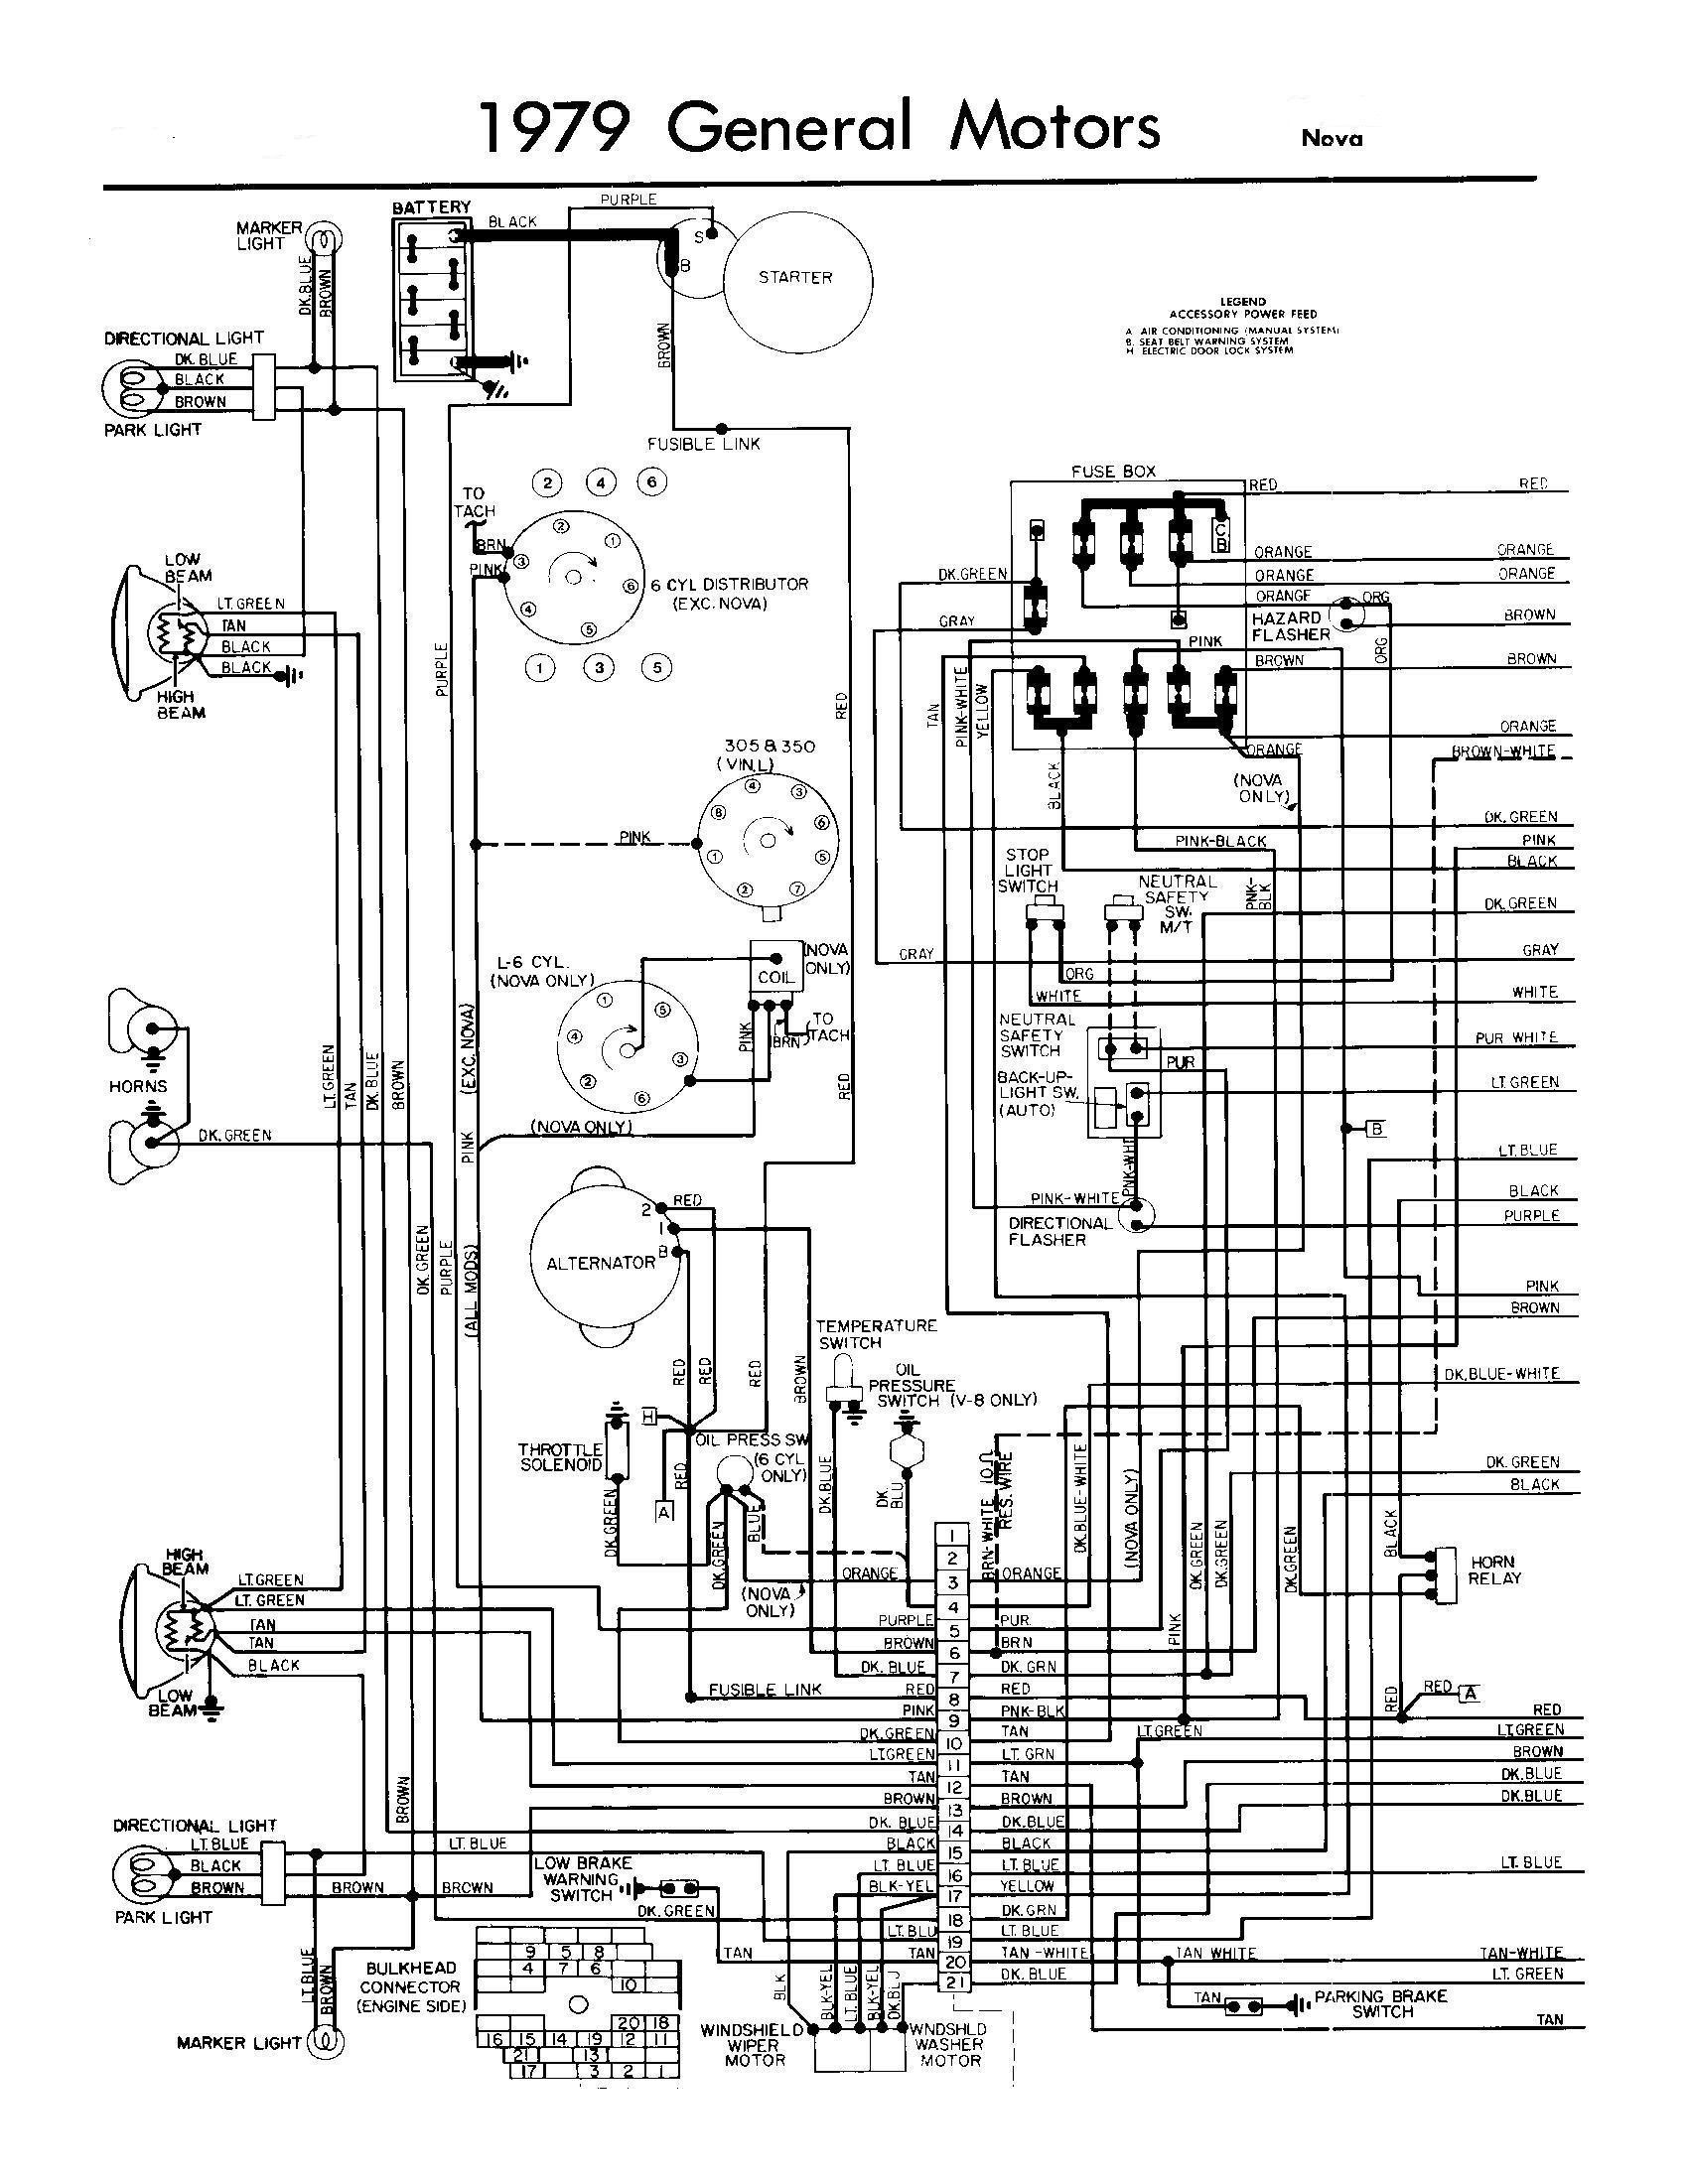 1949 chevy wiring harness sleeve